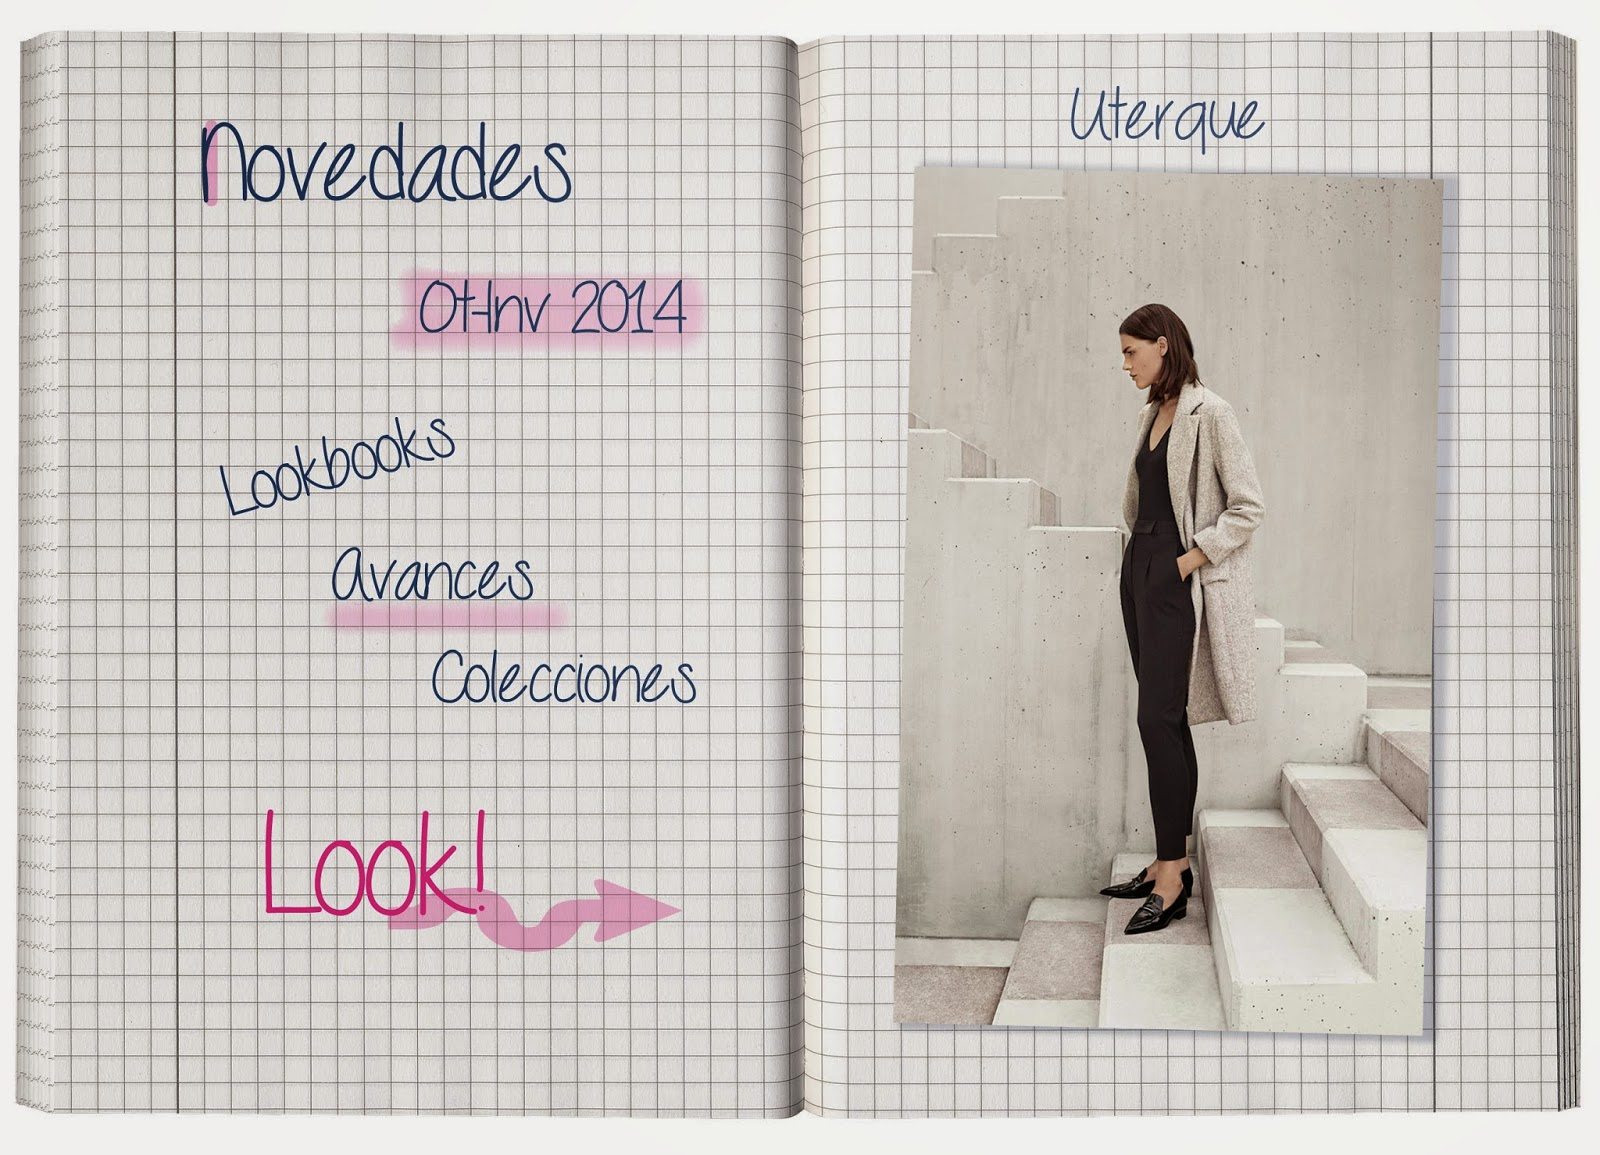 photo-lookbook-avance-colecciones-OI14-uterque